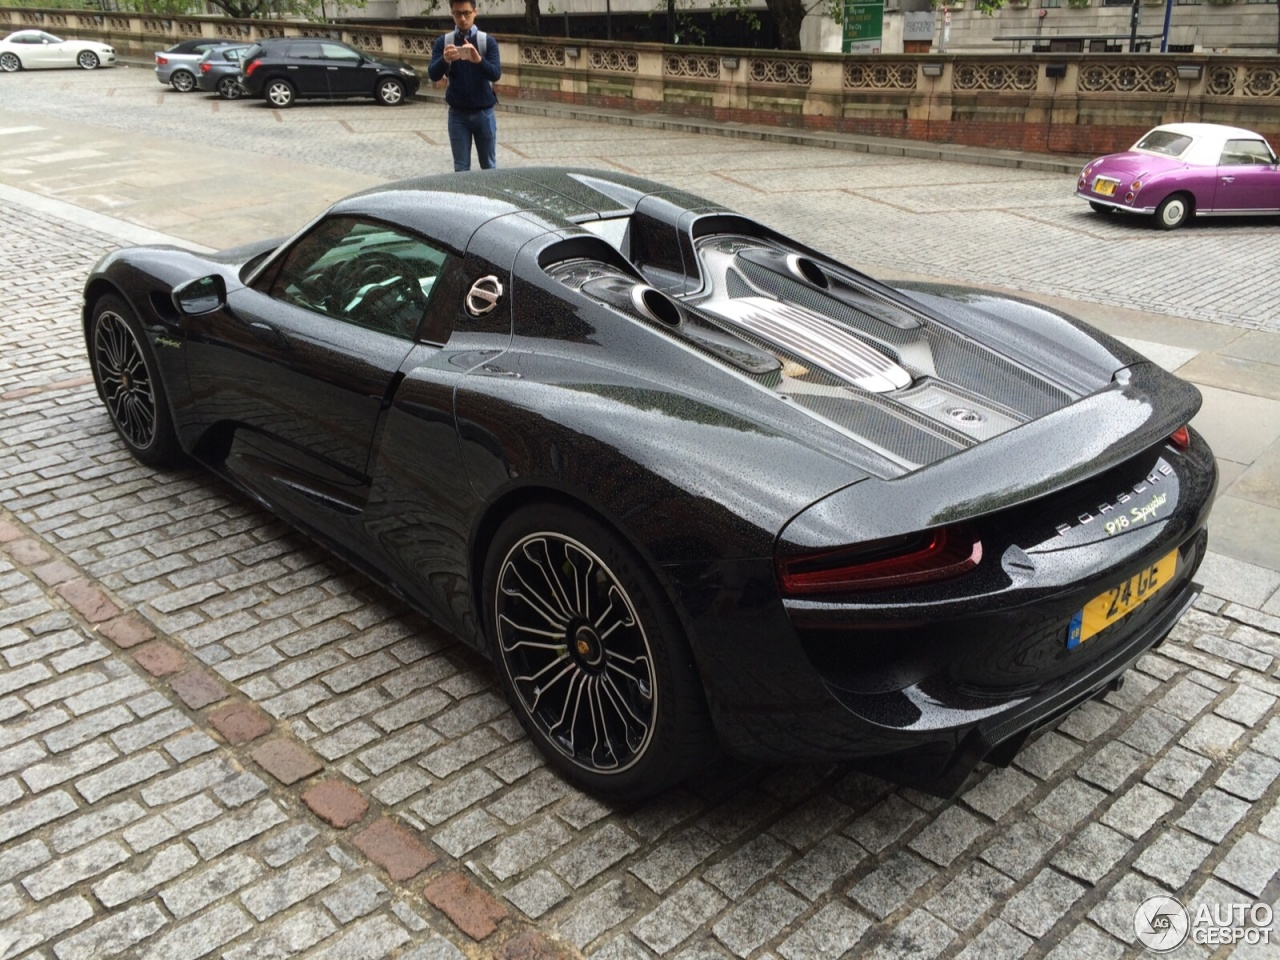 Porsche 918 Spyder 8 May 2015 Autogespot